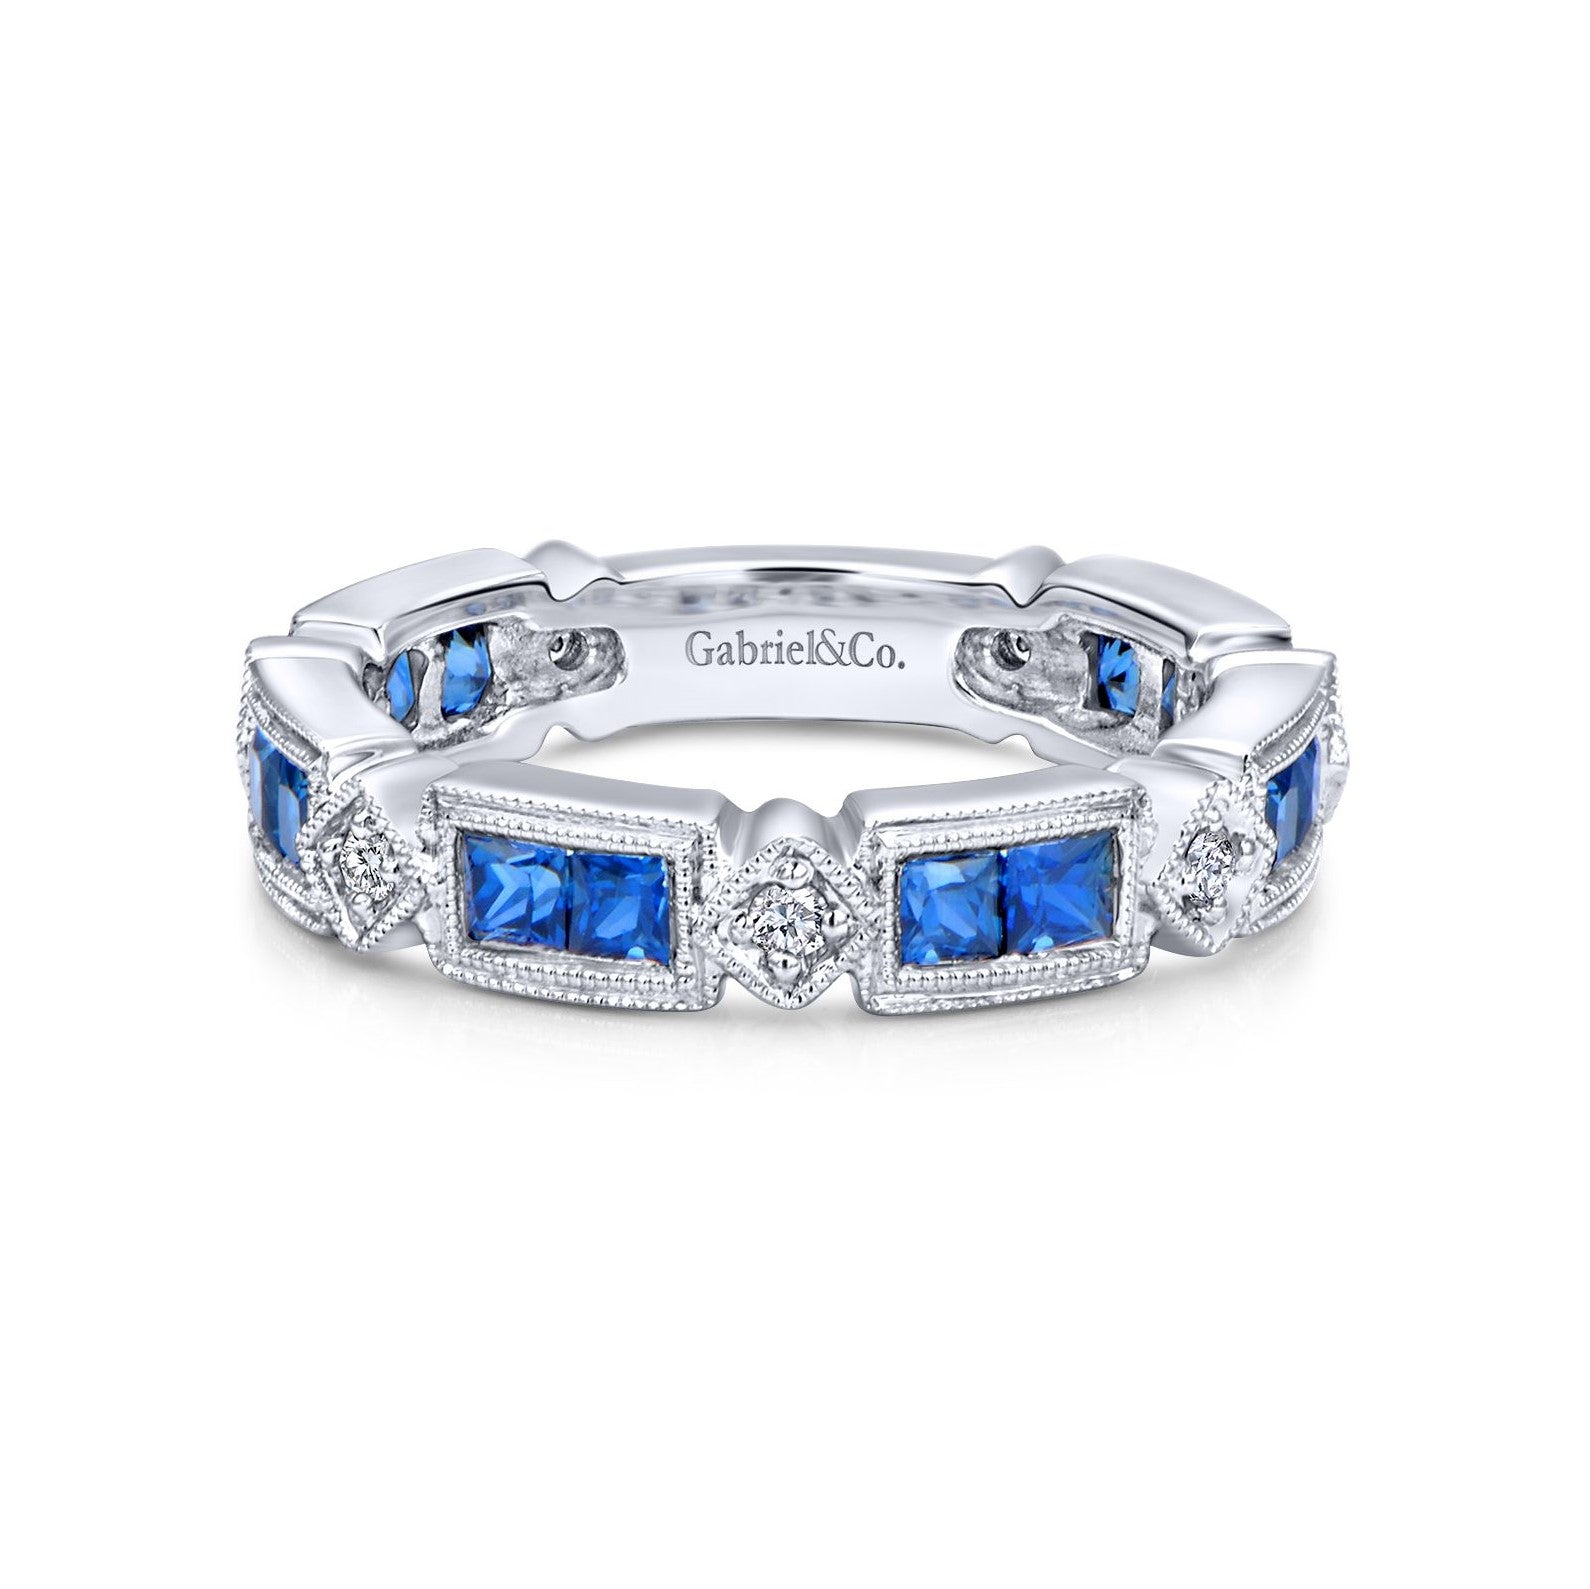 14 karat white gold, blue princess cut sapphires and round diamonds, eternity ring